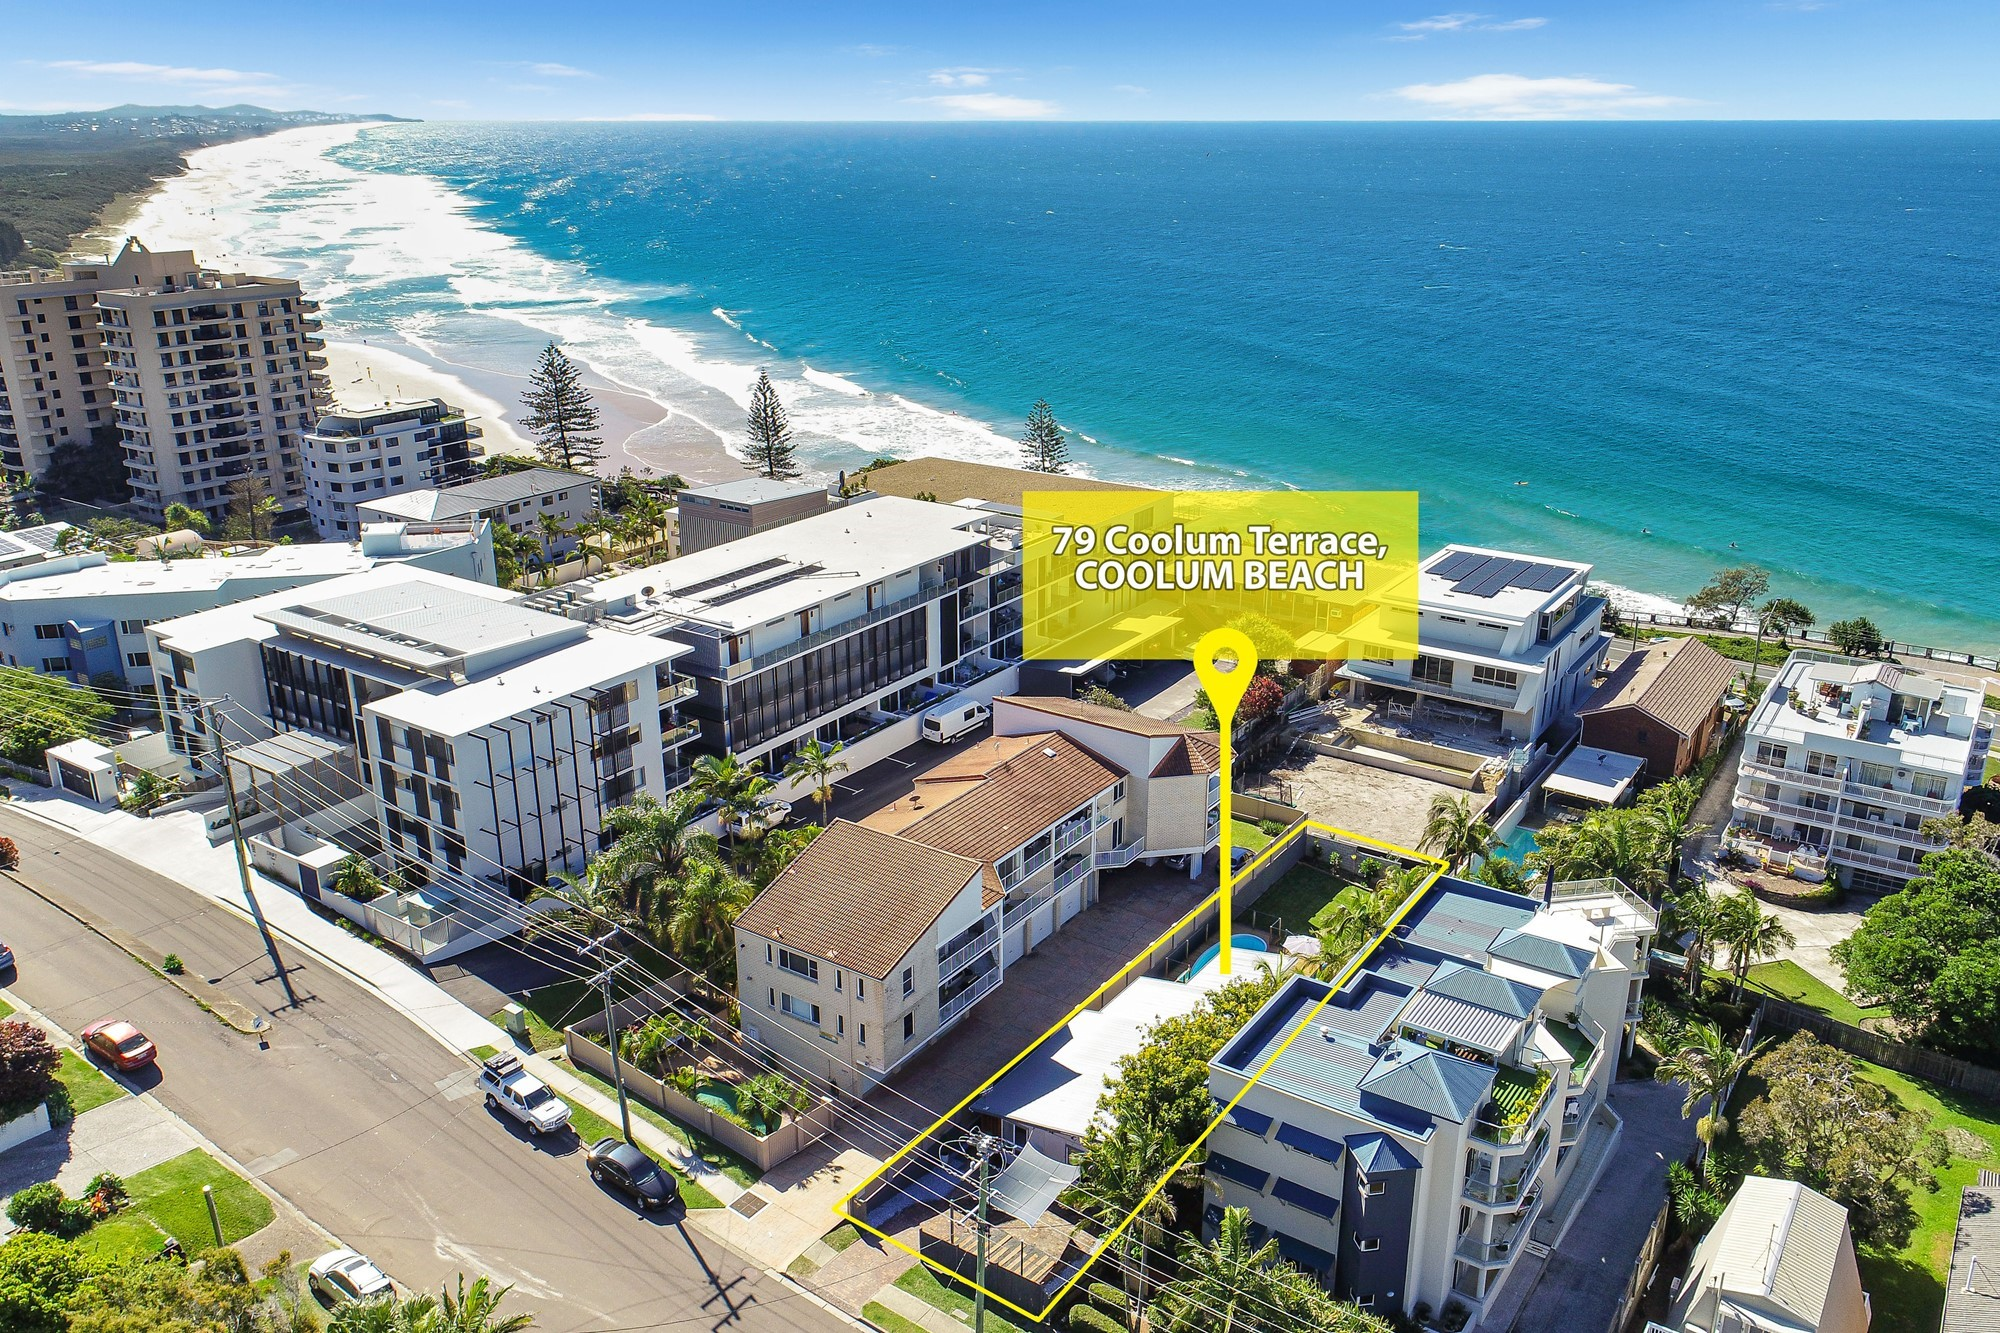 79 Coolum Terrace Coolum Beach